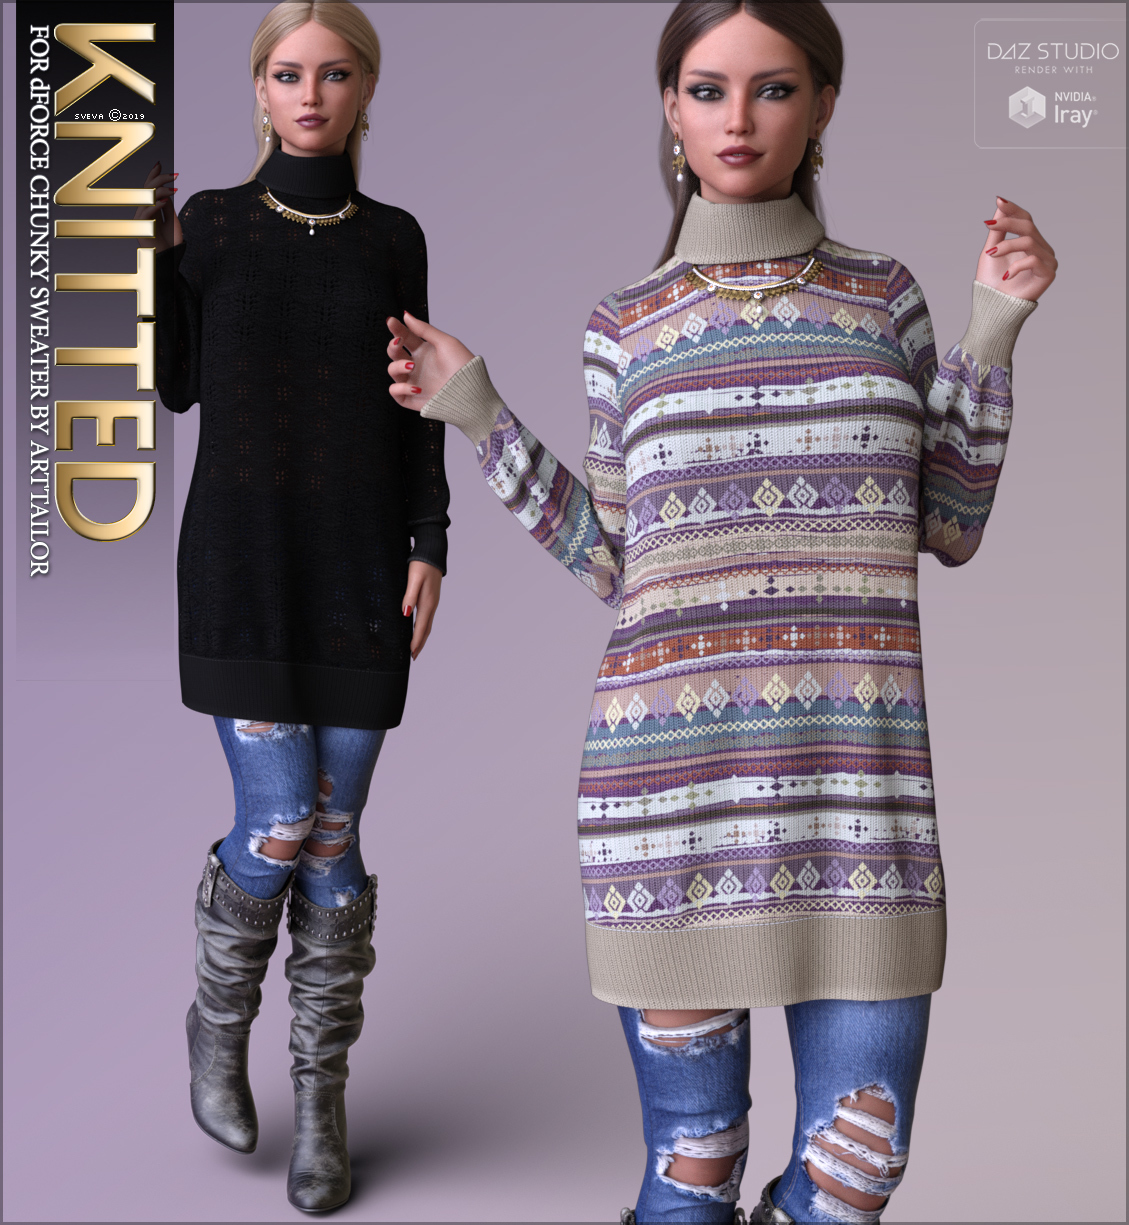 Knitted for dForce Chunky Sweater G8F by Sveva